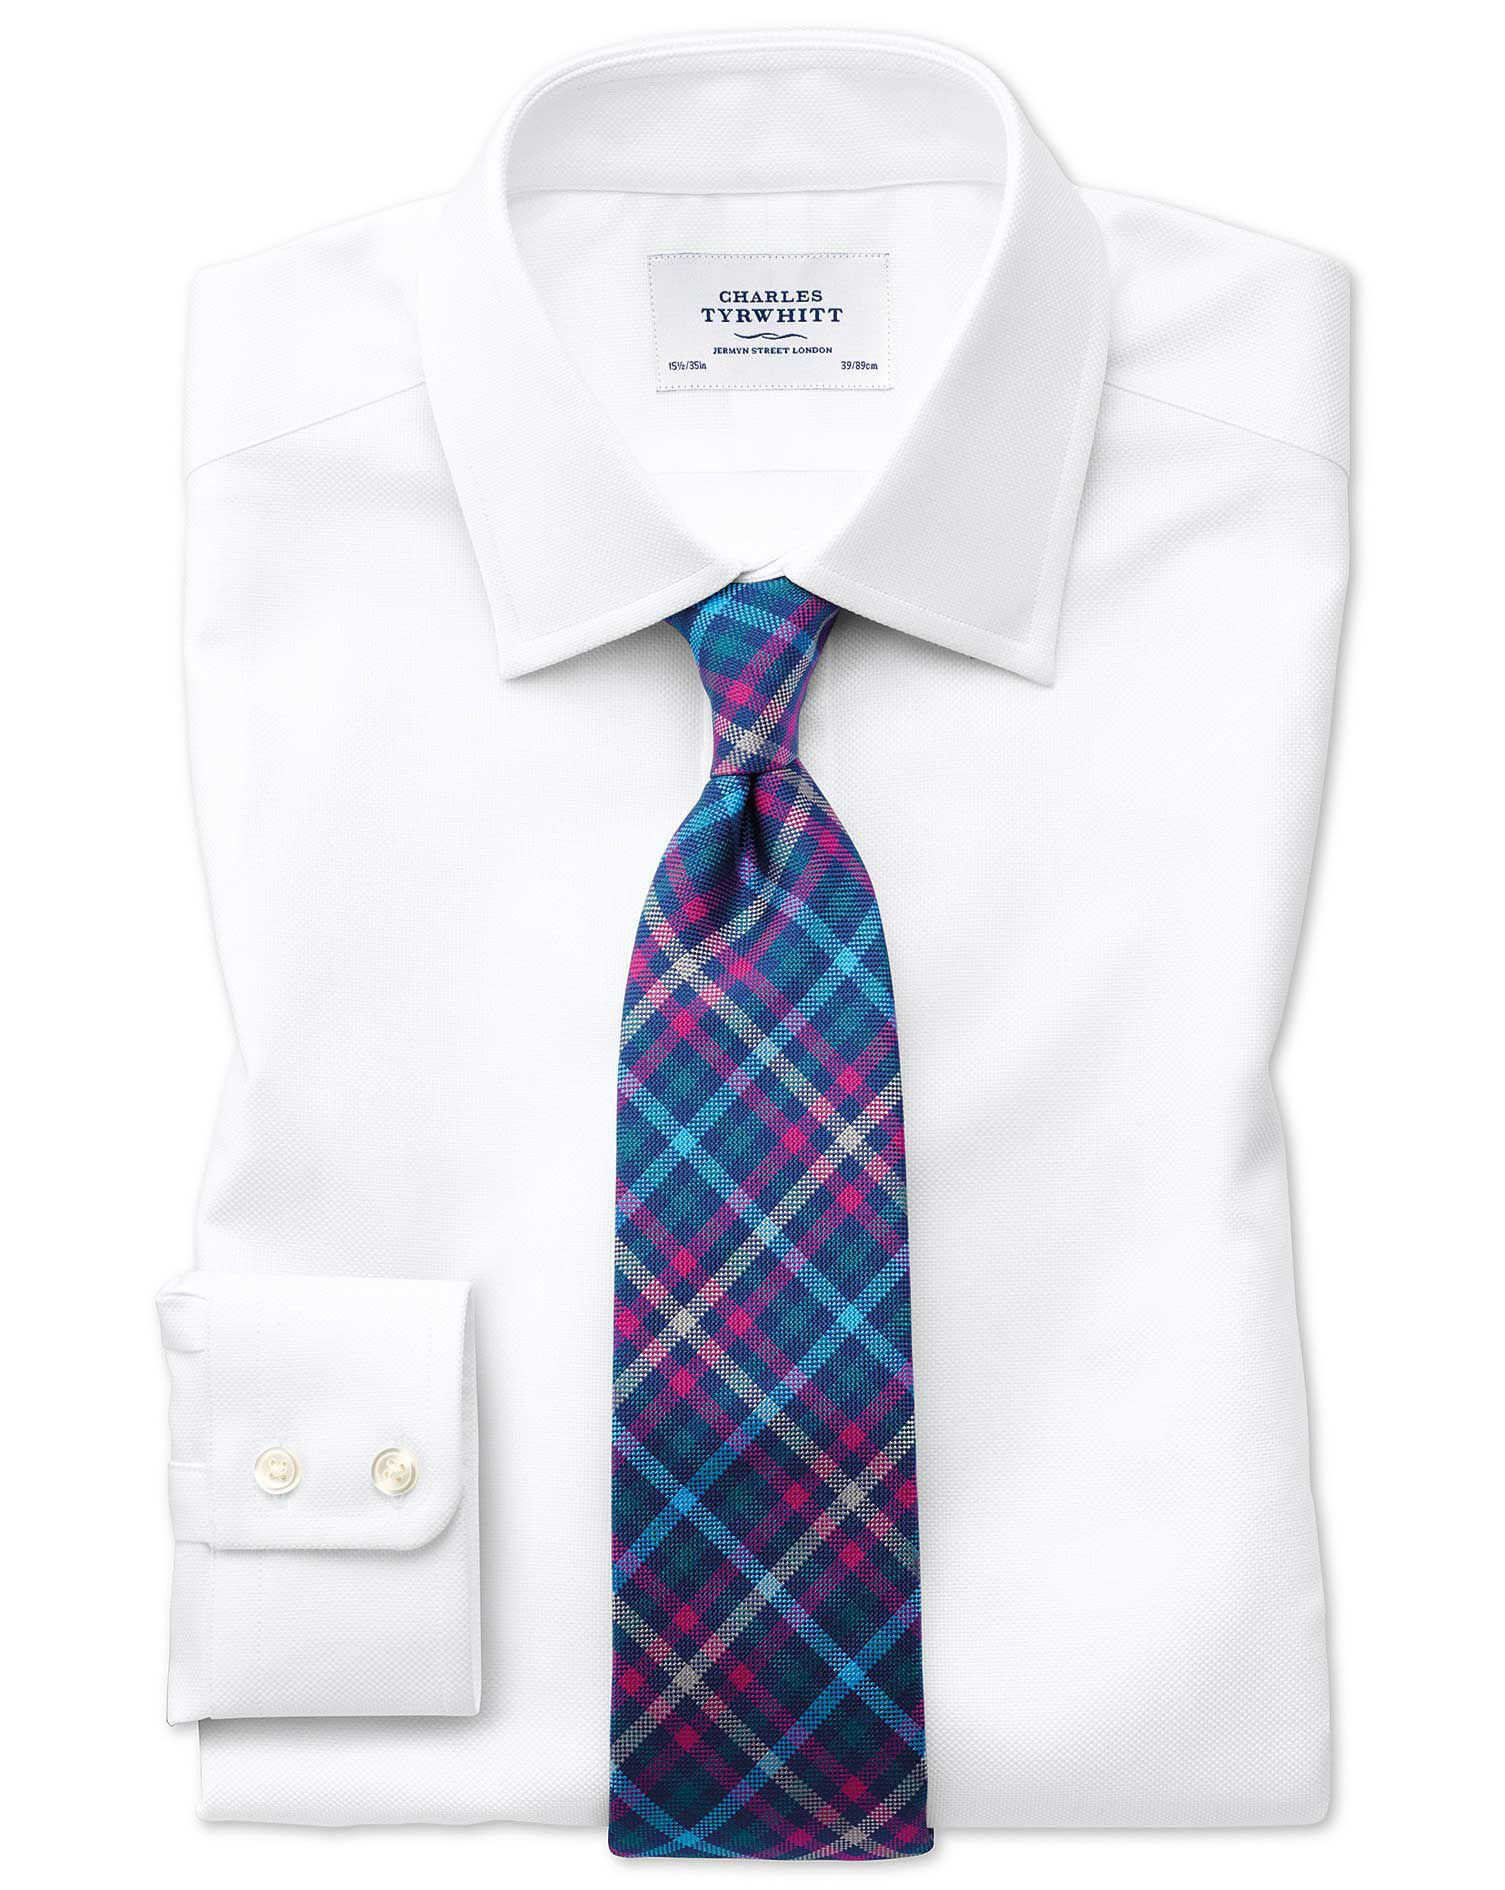 Slim Fit Egyptian Cotton Royal Oxford White Formal Shirt Double Cuff Size 16/36 by Charles Tyrwhitt